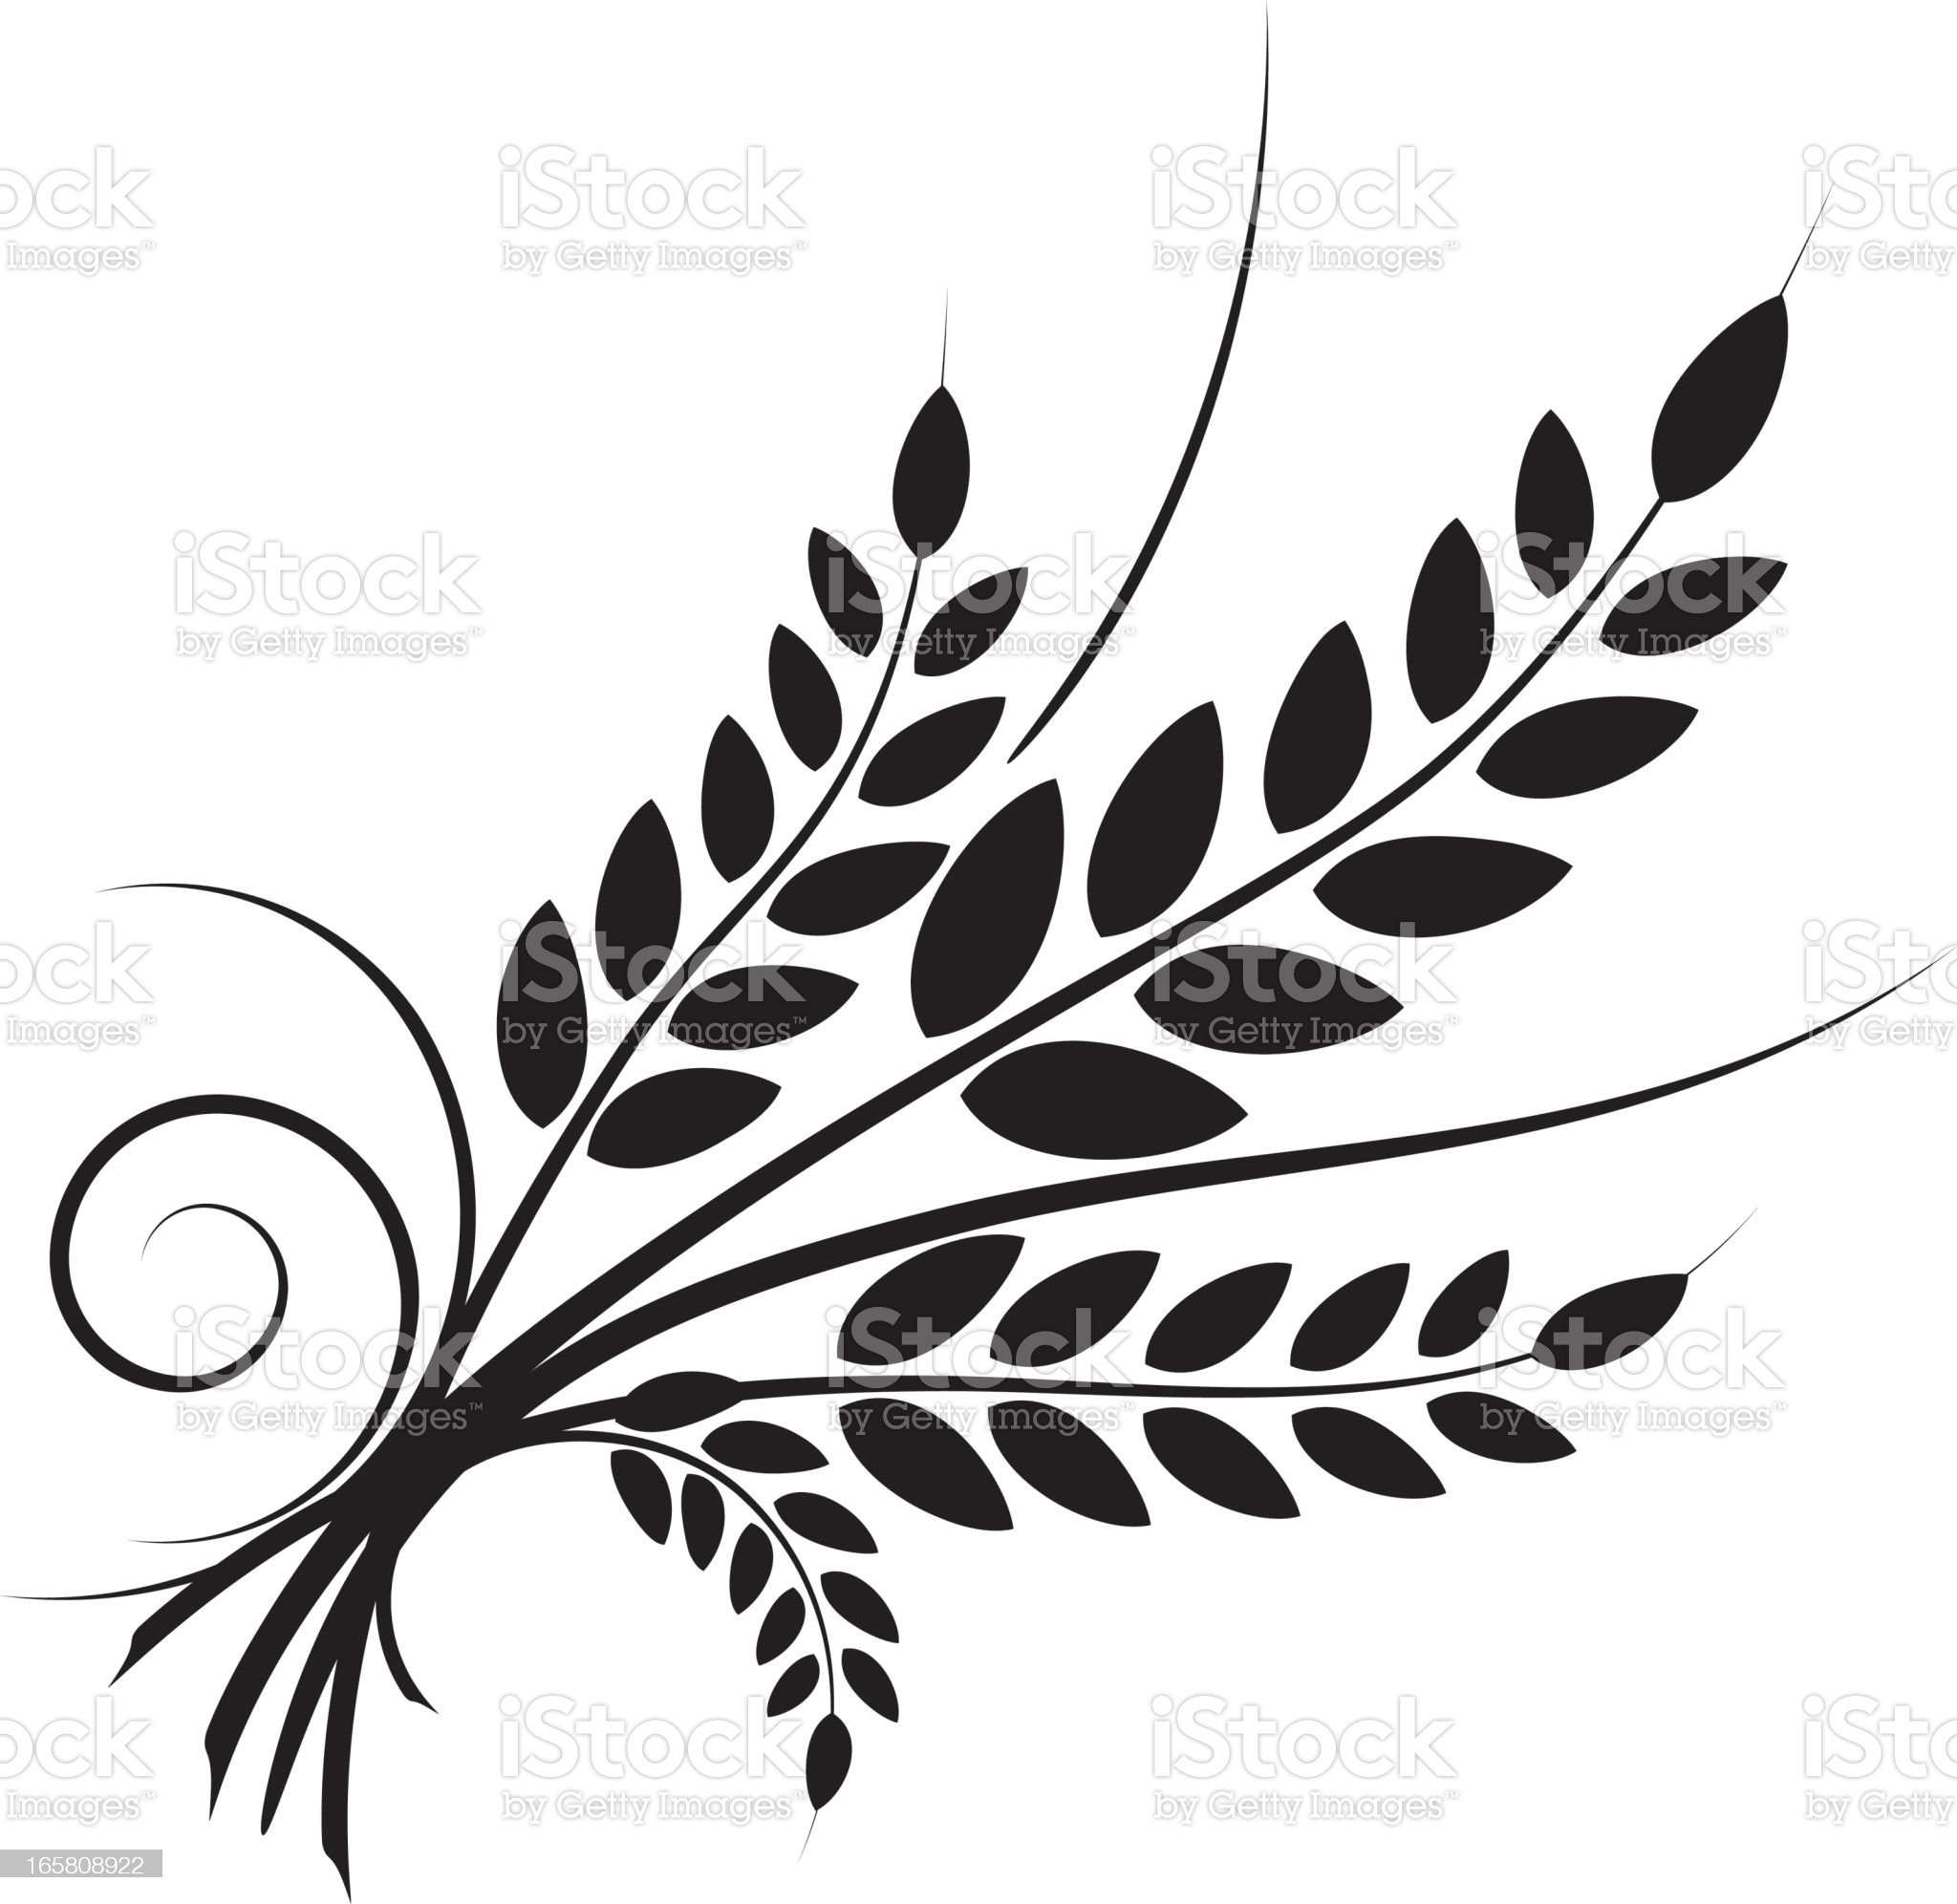 Simple Wheat Icon with swirl designs - black silhouette royalty-free stock vector art